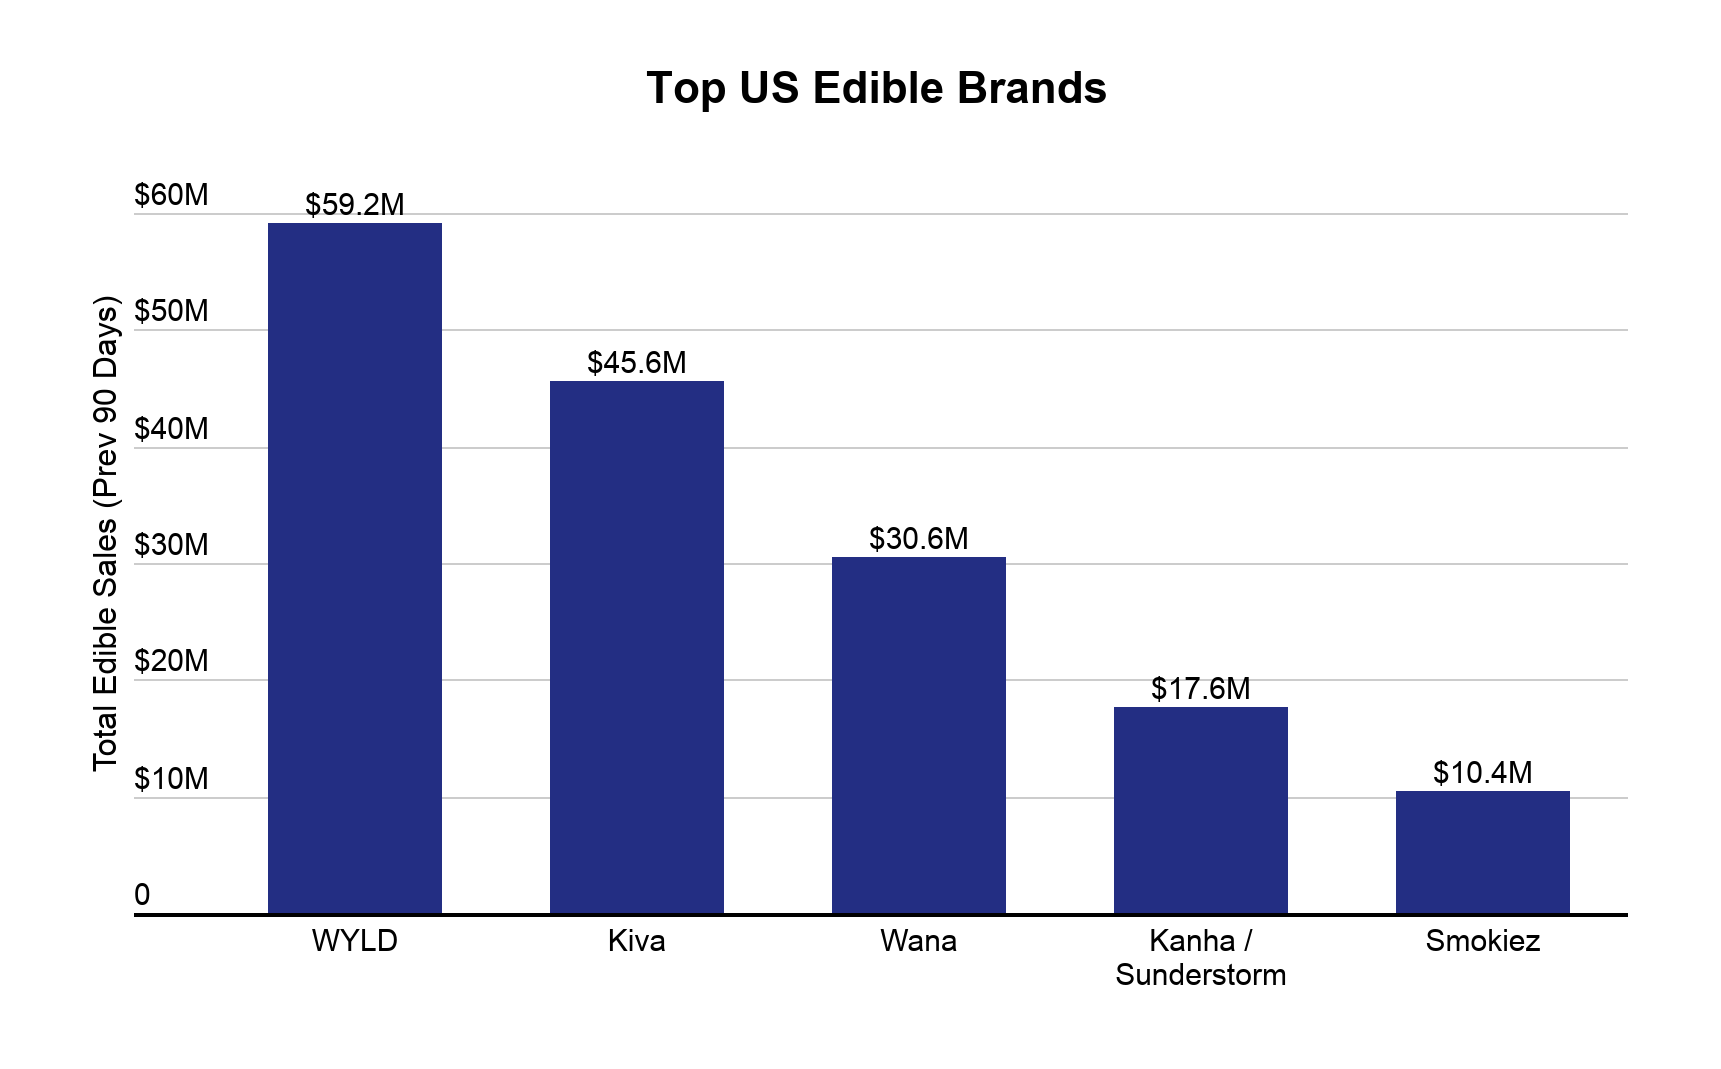 Cannabis edibles data & performance image 8: Top cannabis edible brands in the US